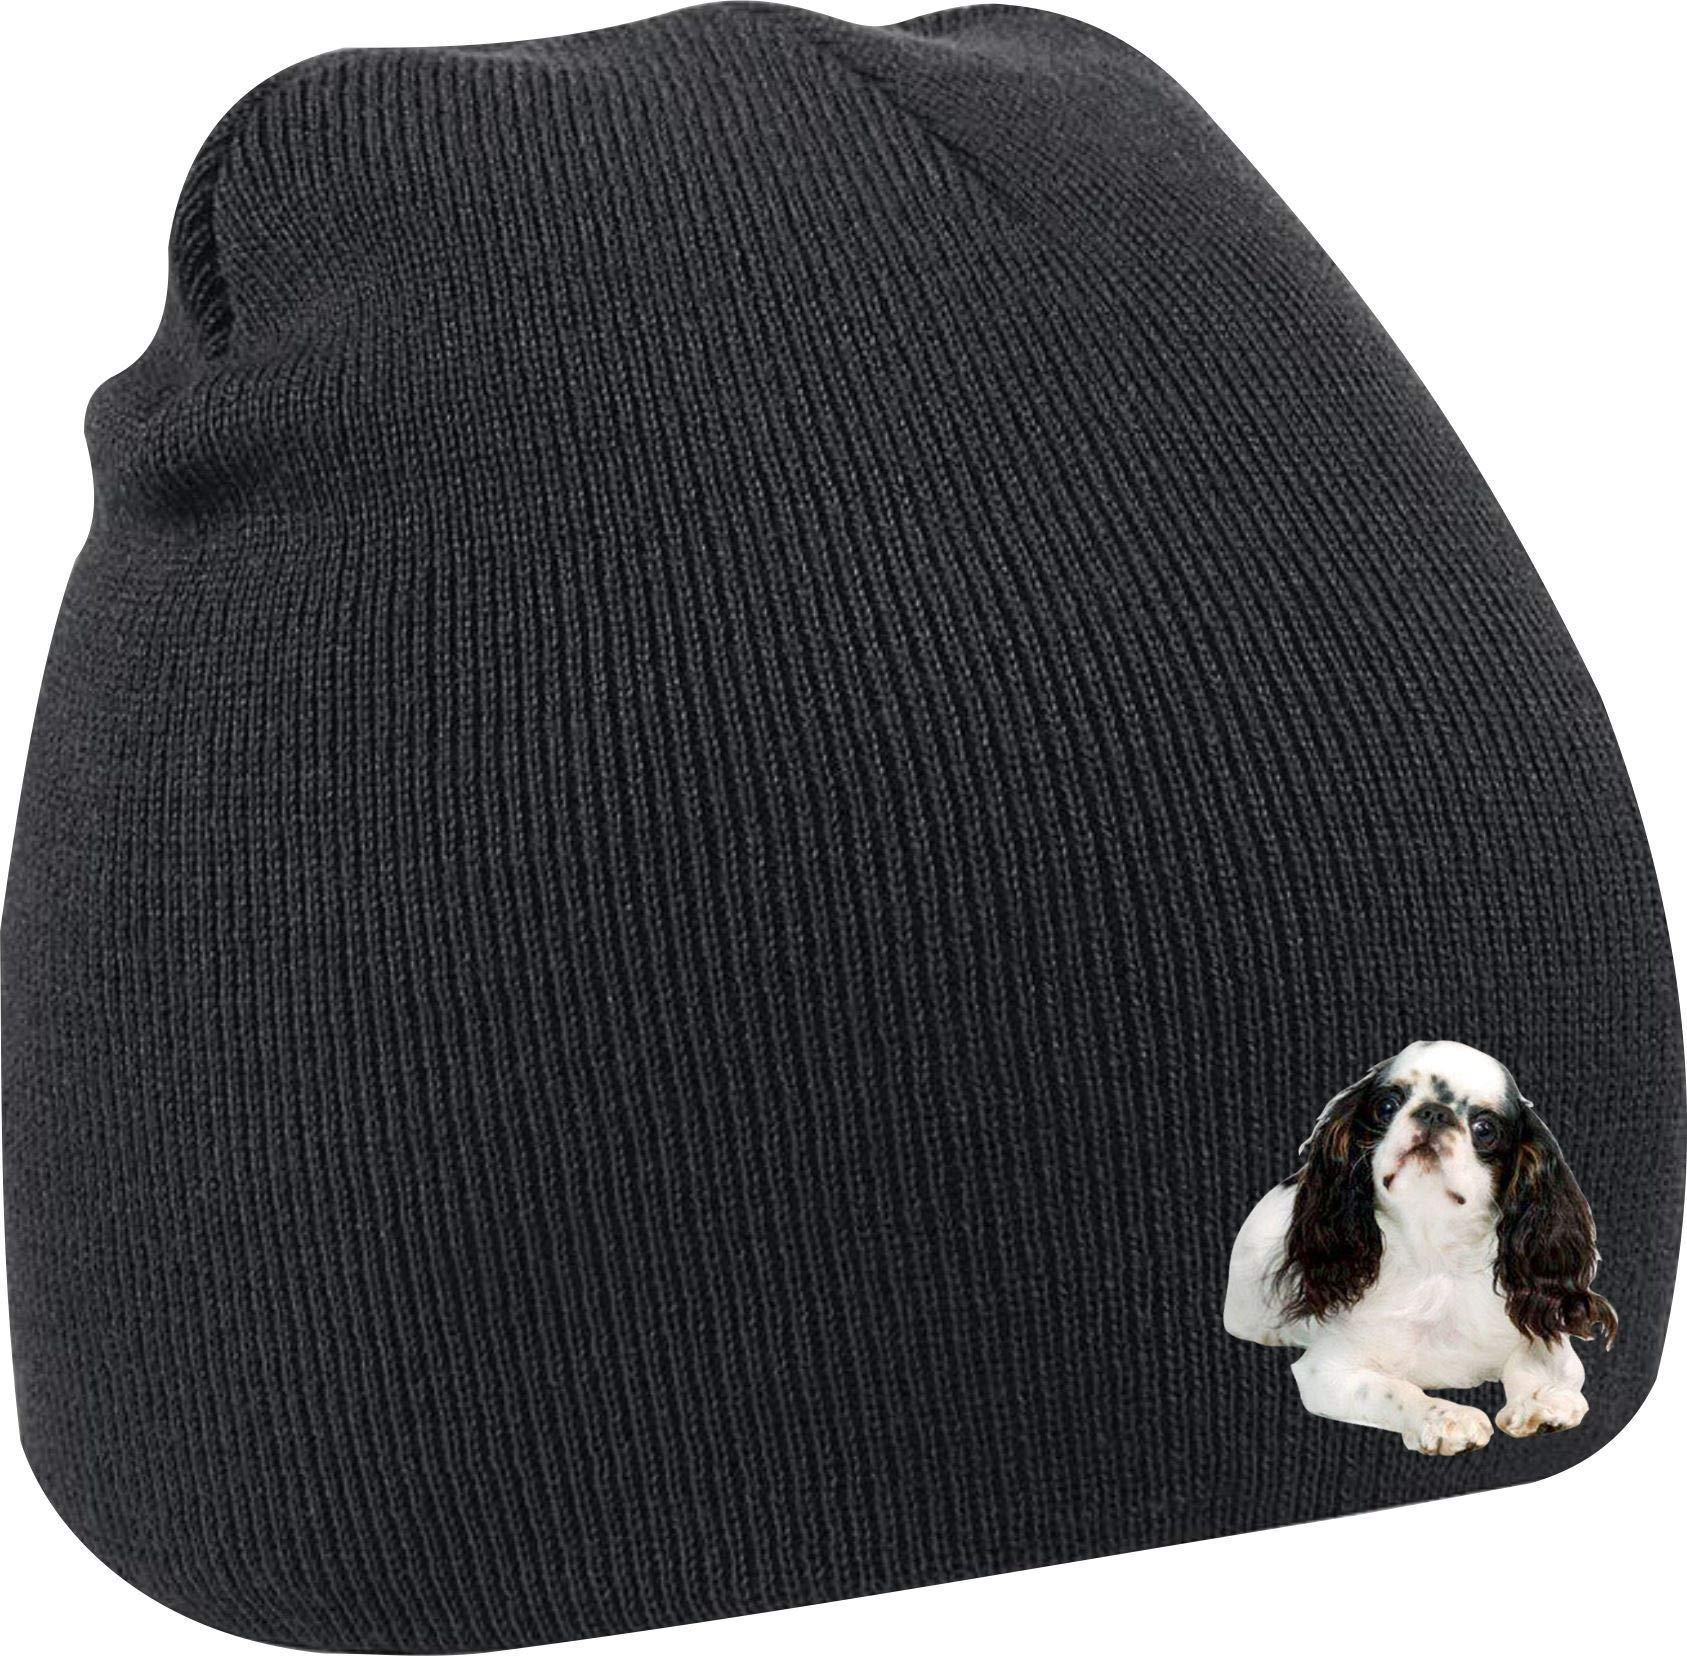 Taurus Clothing English Toy Spaniel Dog Personalised Embroidered Beanie Black